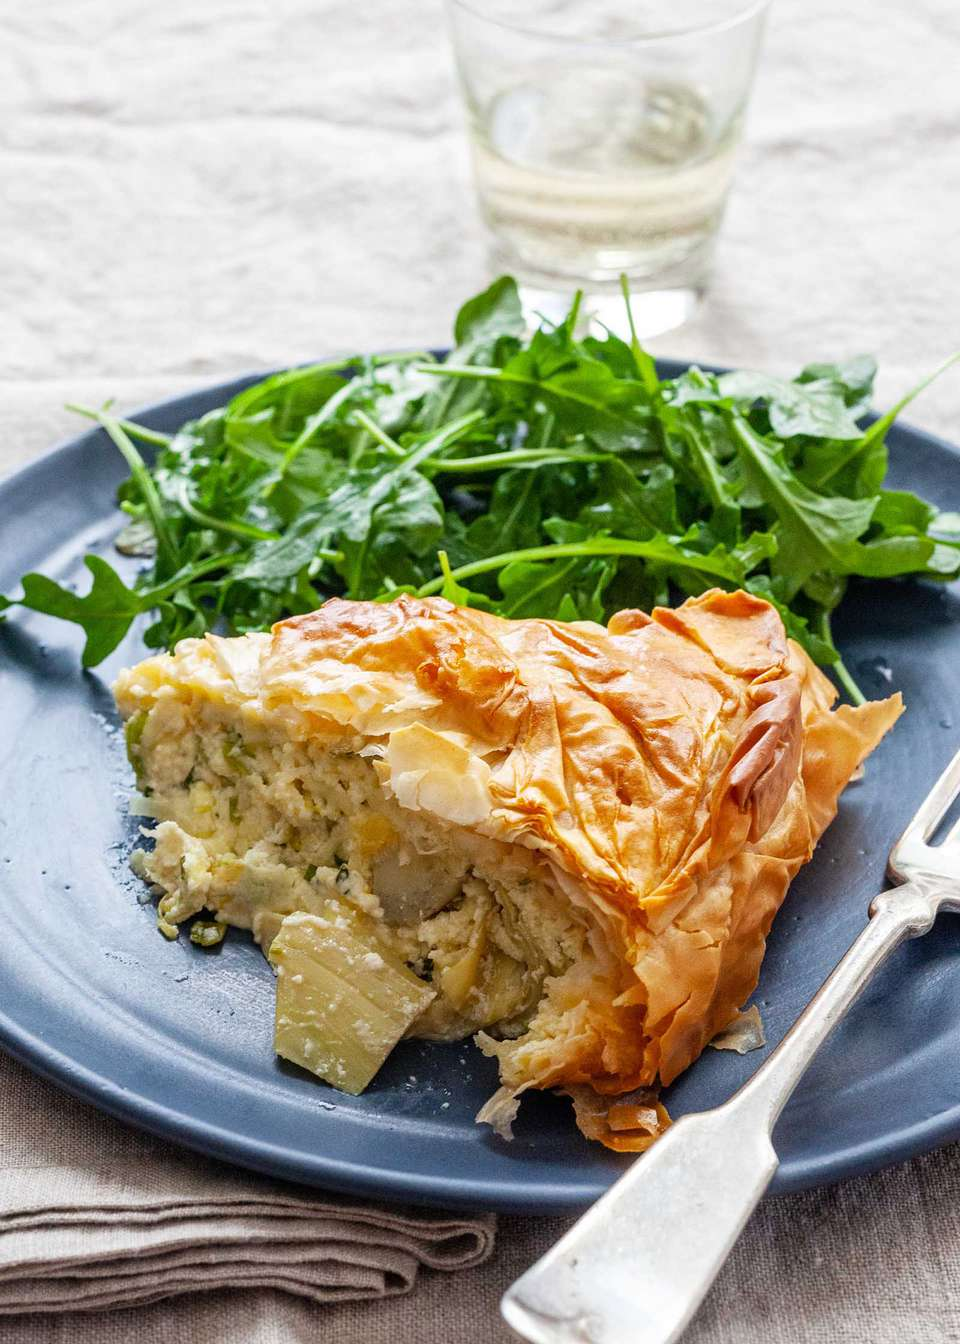 Side view of a slice of spring pie on a blue plate with a golden, flaky crust and topping. Chopped artichokes are visible in the cheesy filling. A bright arugula salad is behind the pie on the plate. A glass of white wine is behind the plate. Linens are under the plate and a fork is set to the right of the pie on the plate.